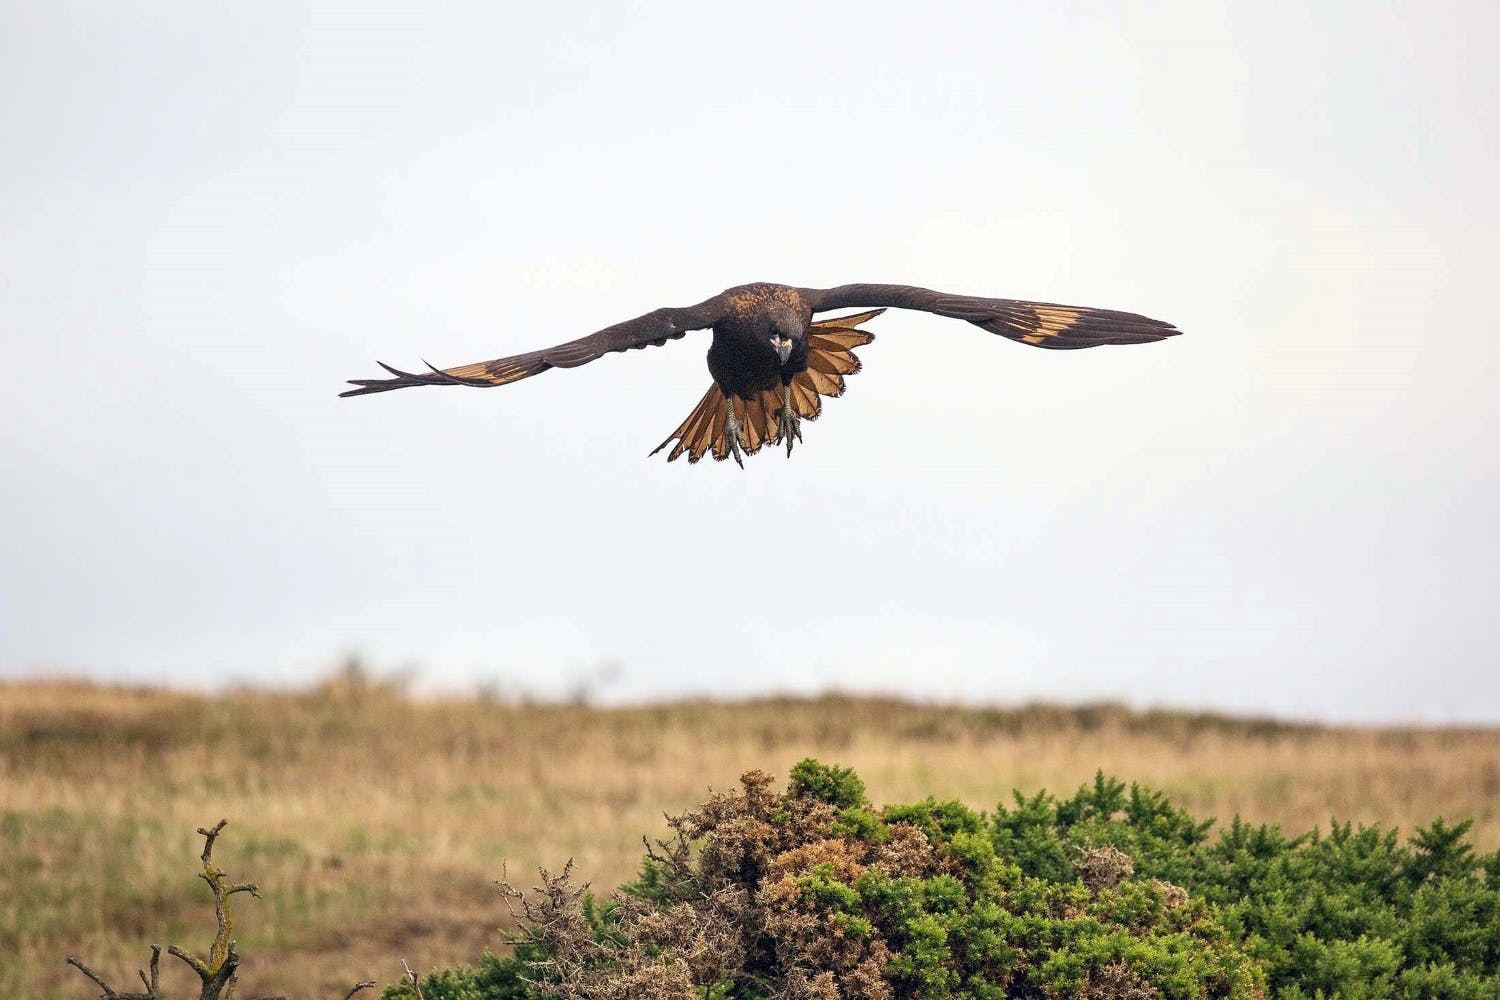 The striated caracara's wingspan makes it quite the aerial acrobat.